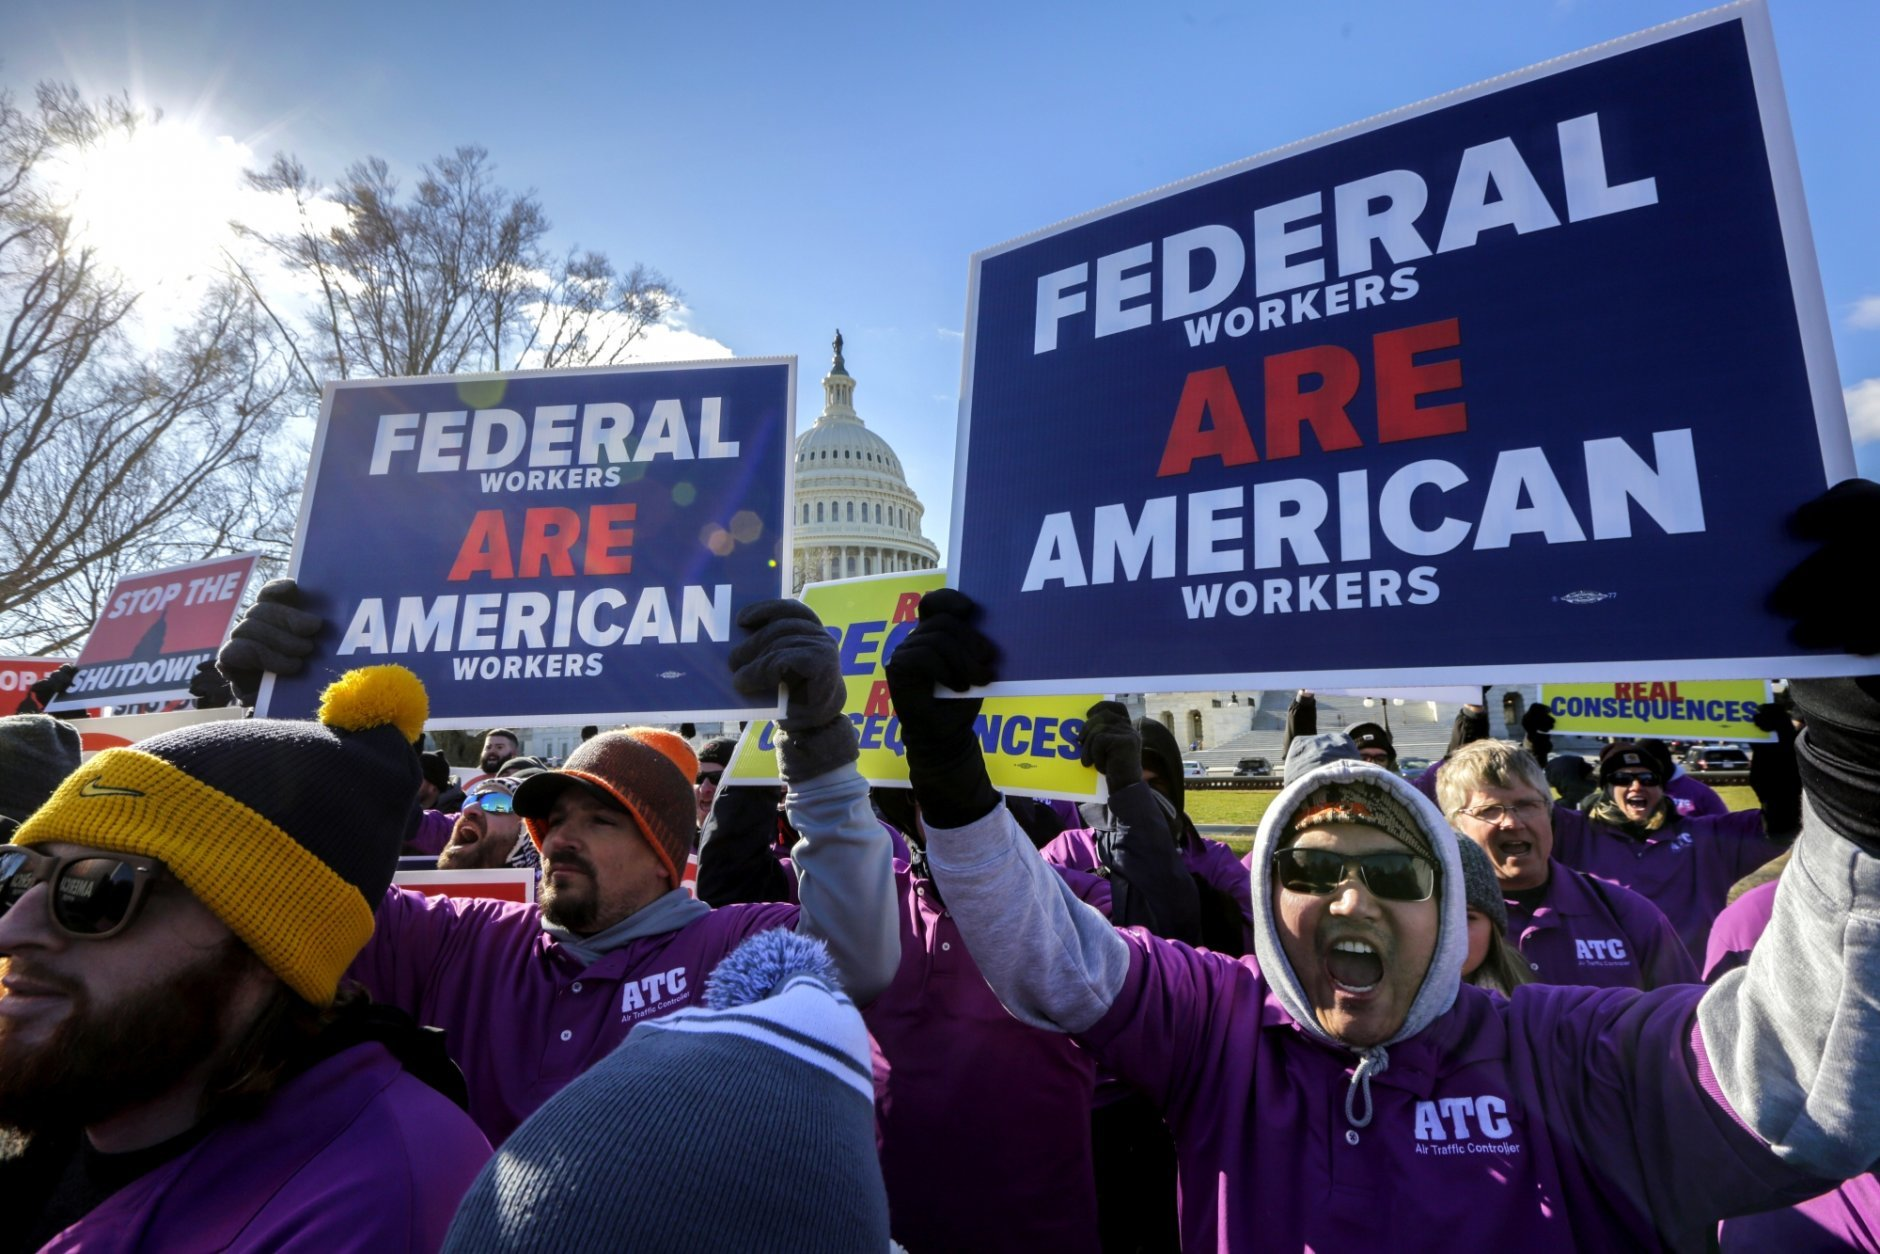 On the 20th day of a partial government shutdown, federal employees rally at the Capitol to protest the impasse between Congress and President Donald Trump over his demand to fund a U.S.-Mexico border wall, in Washington, Thursday, Jan. 10, 2019. (AP Photo/J. Scott Applewhite)